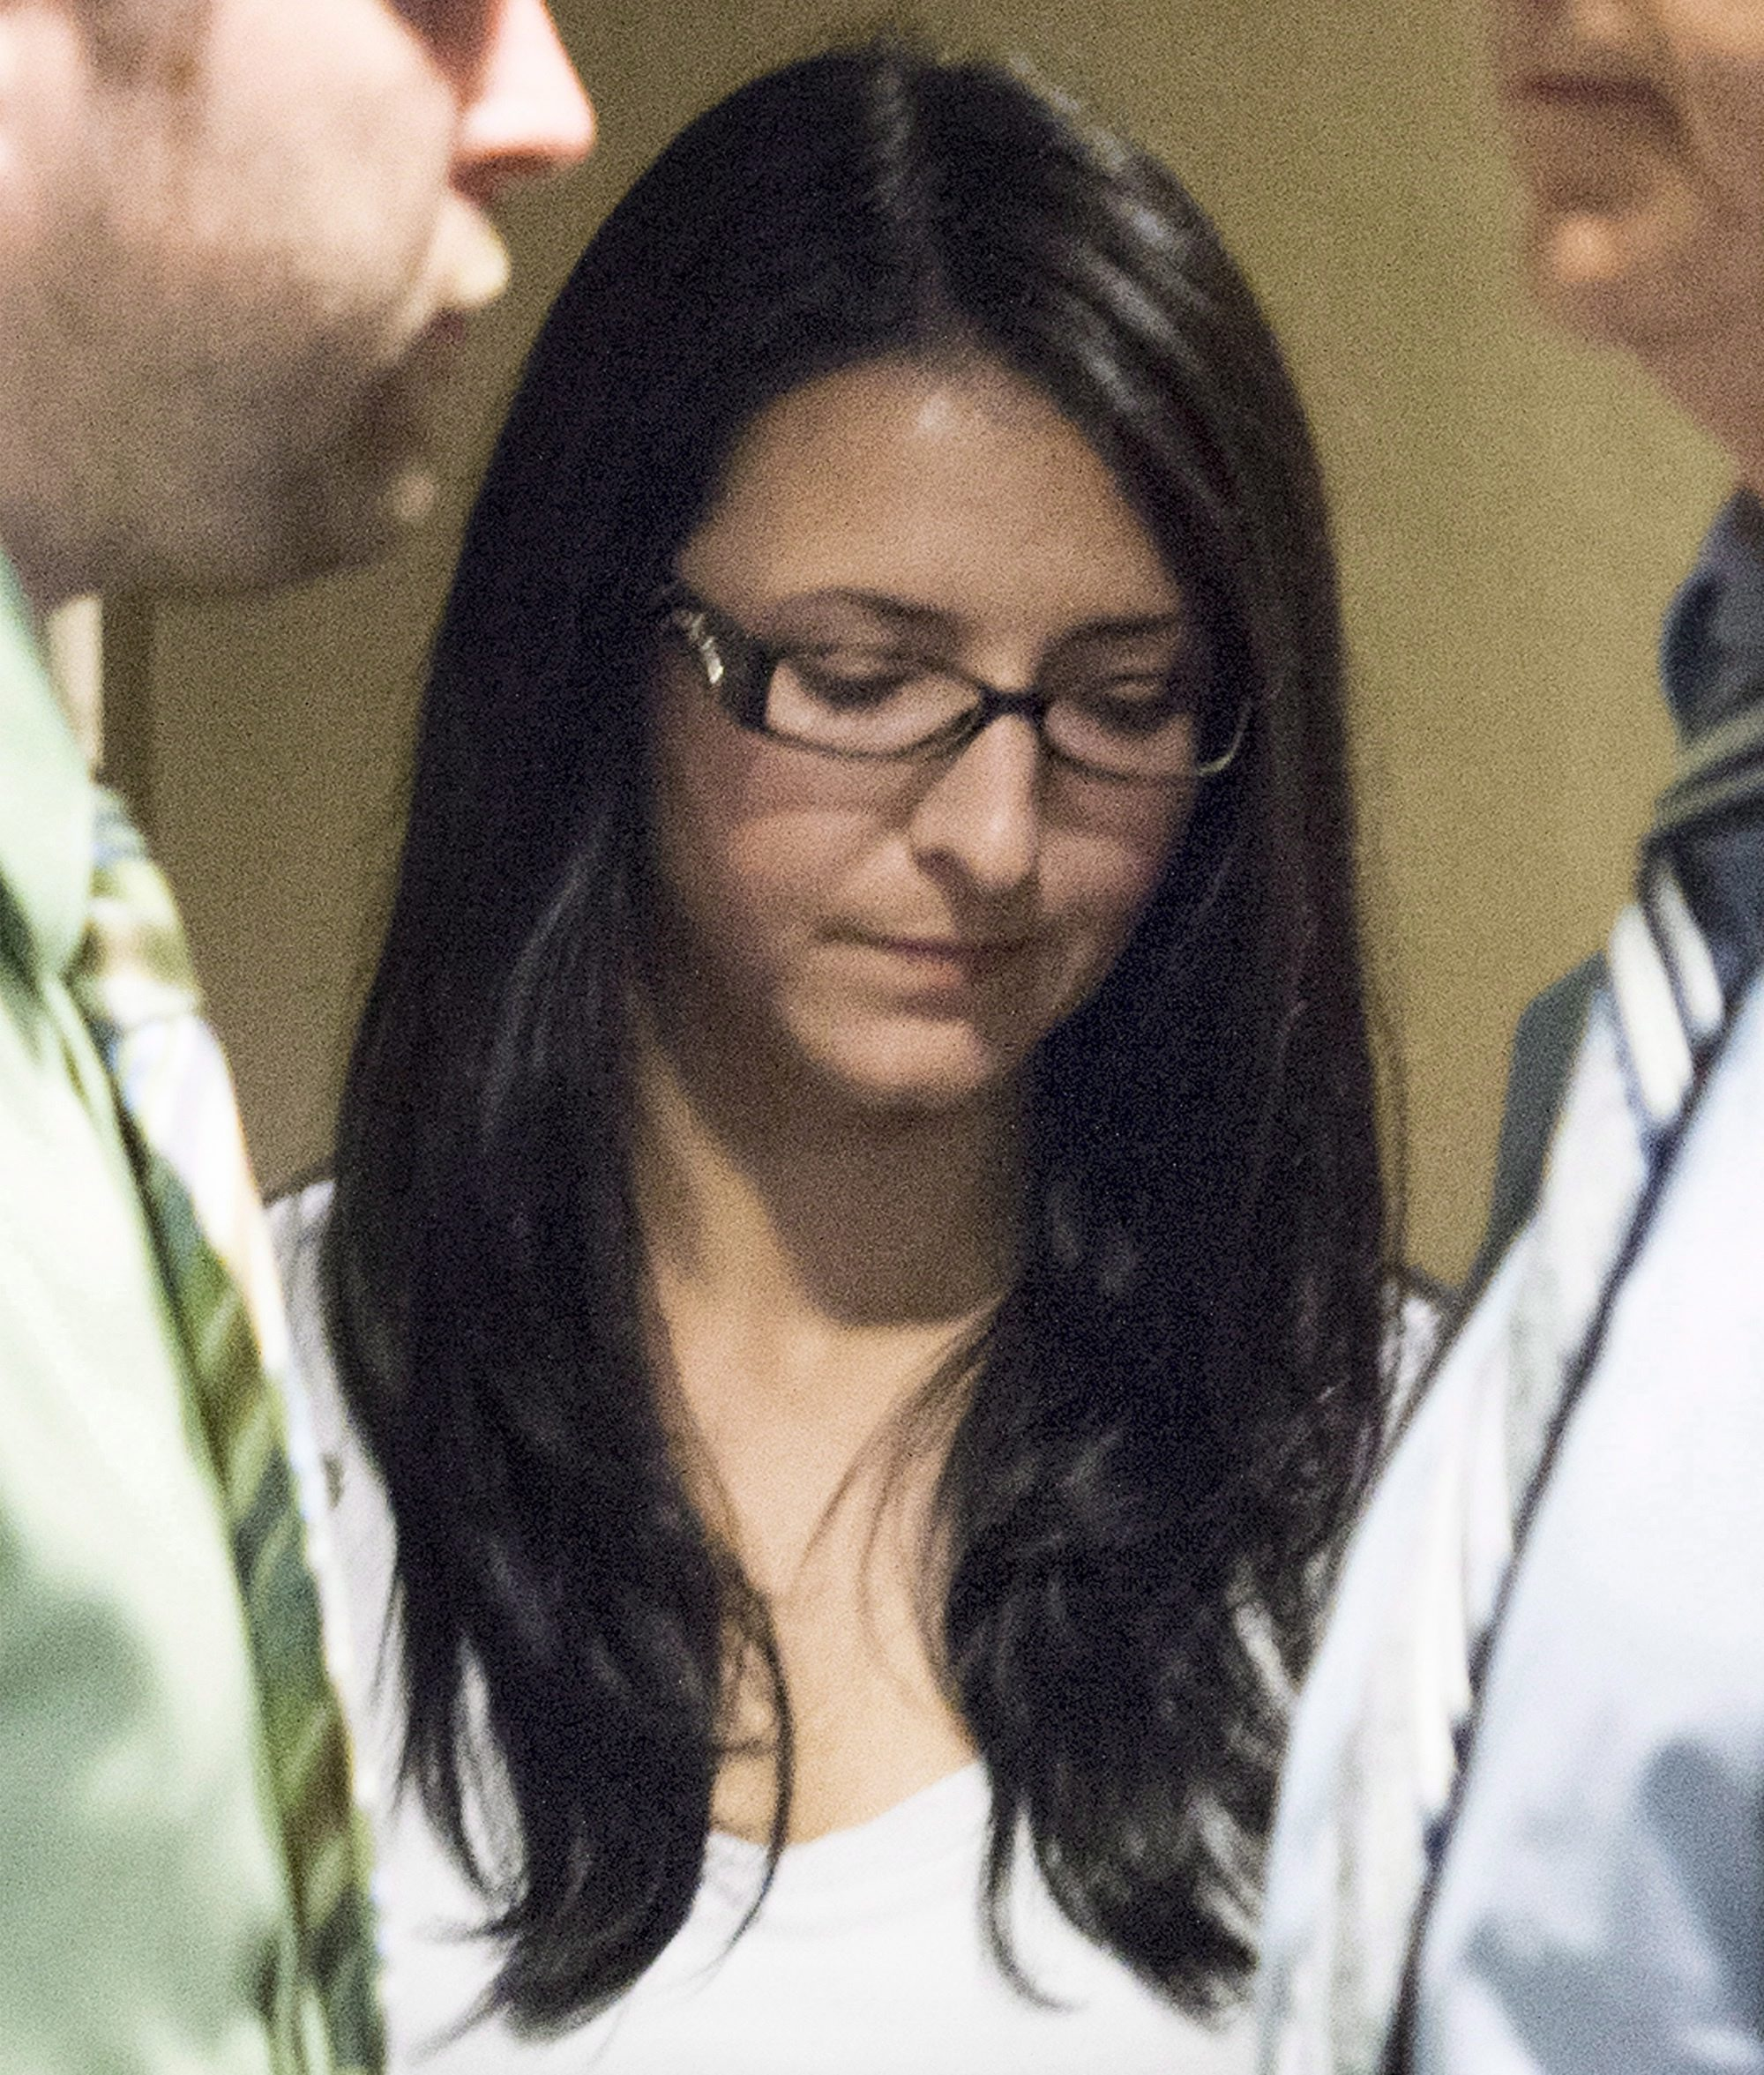 Woman who caused fatal crash saving ducklings could face life imprisonment